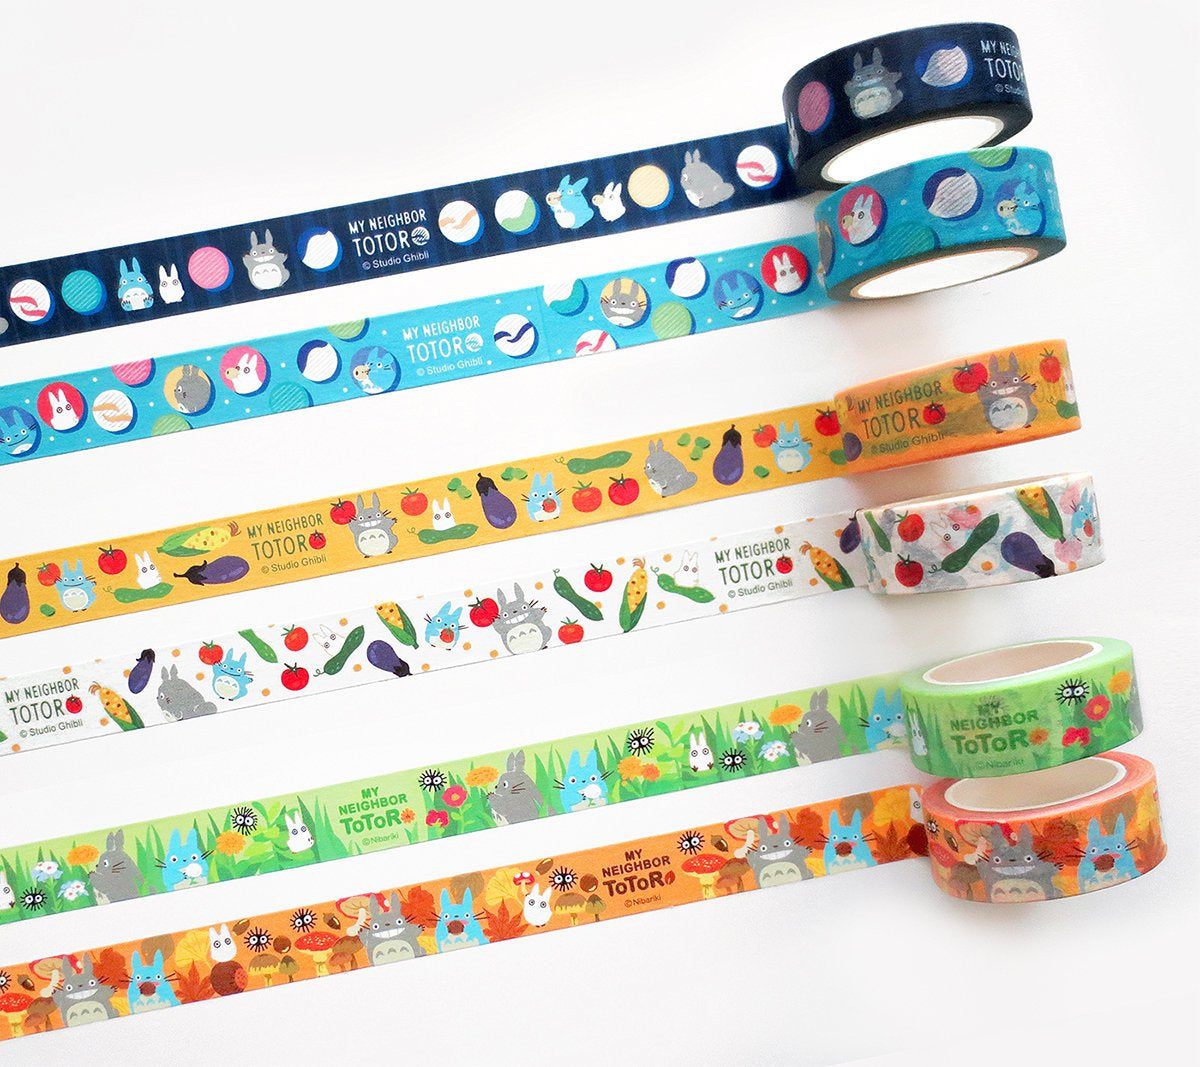 My Neighbor Totoro Washi Tape Set